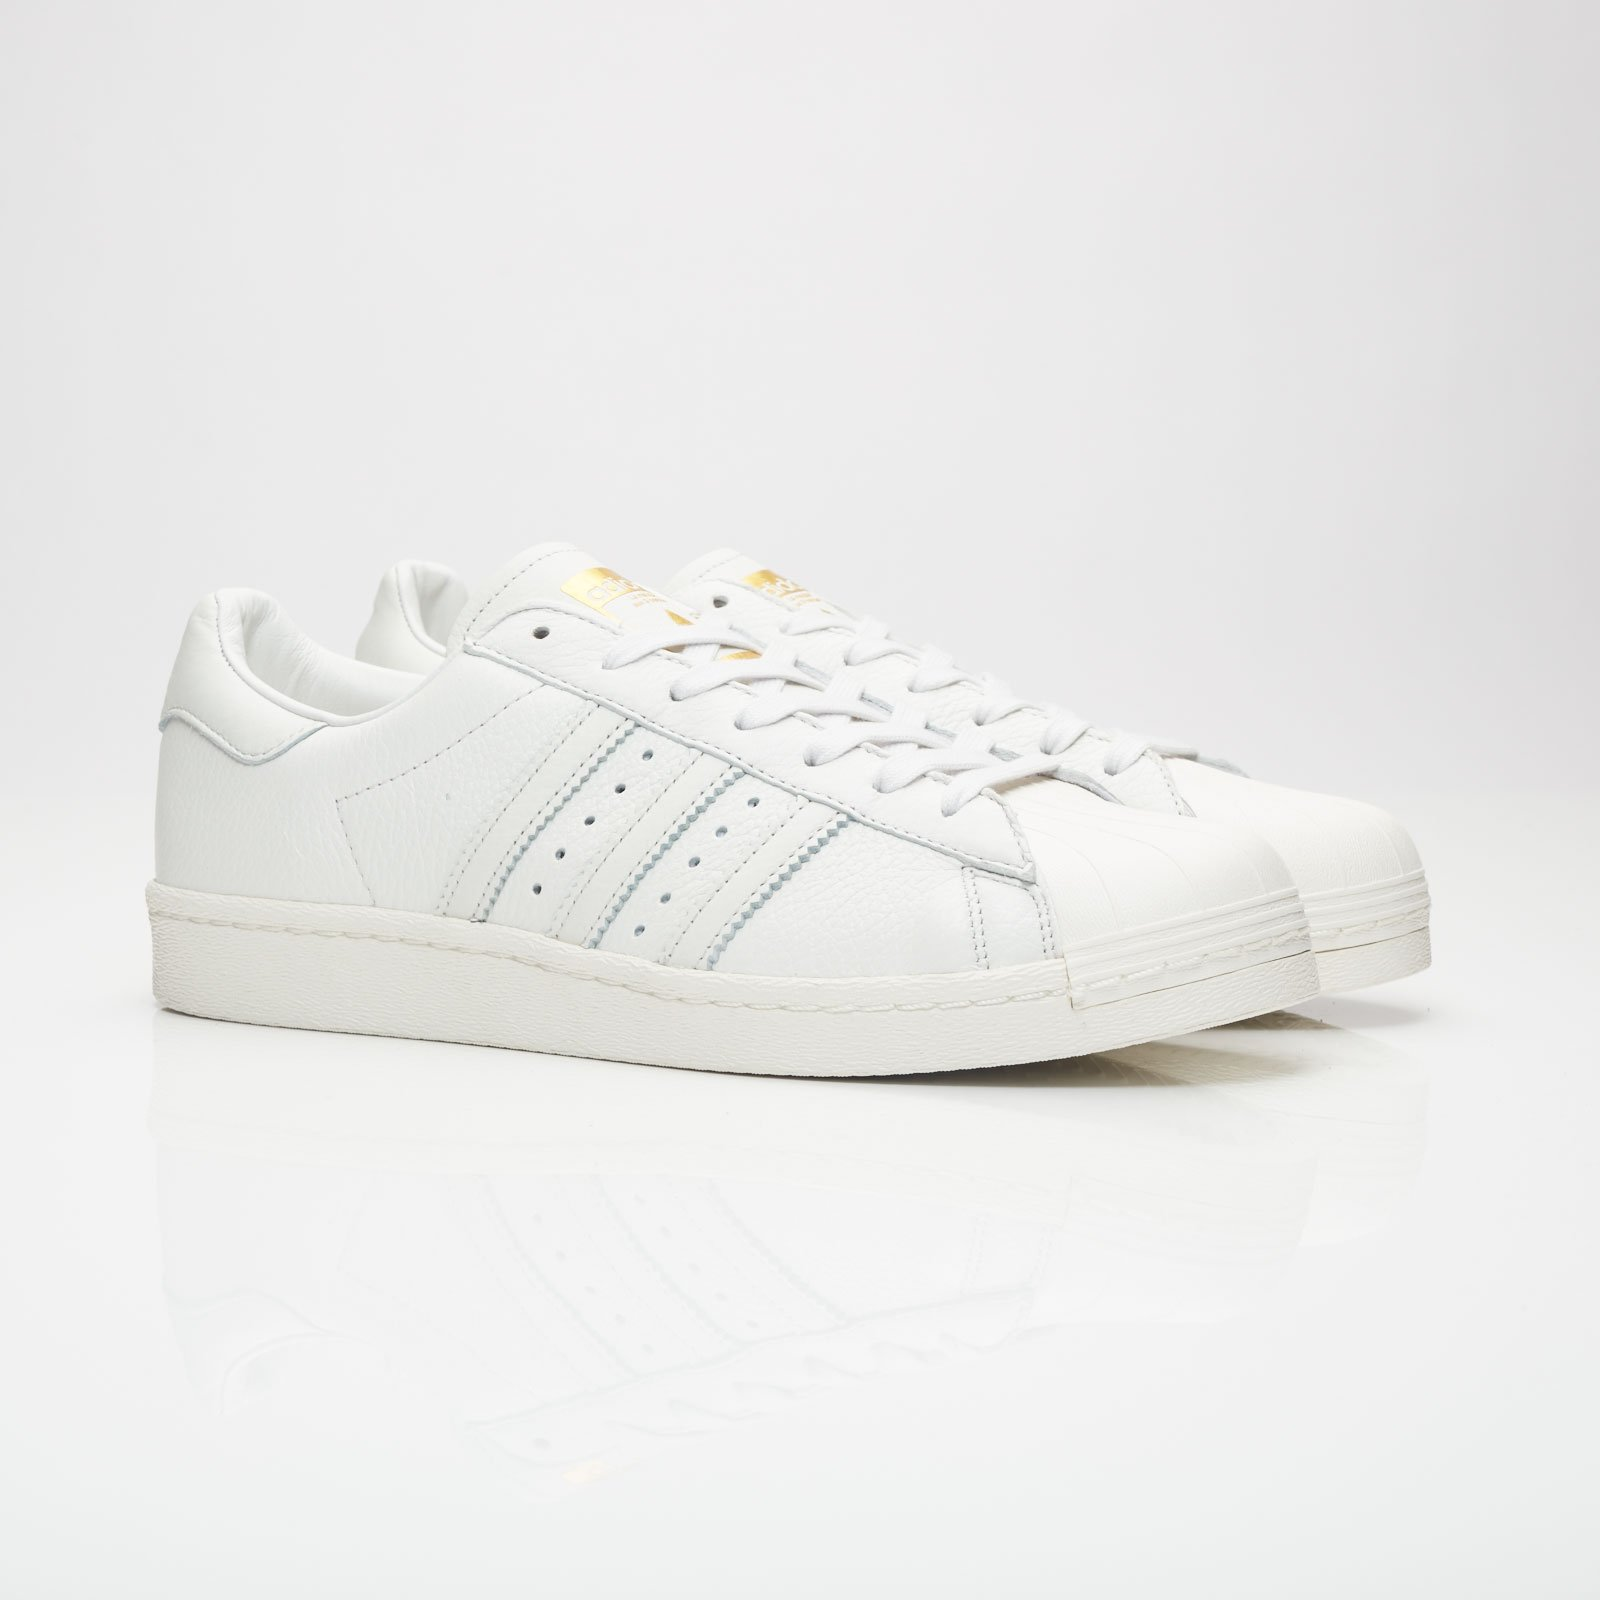 new lifestyle 100% authentic speical offer adidas Superstar Boost - Bb0187 - Sneakersnstuff   sneakers ...